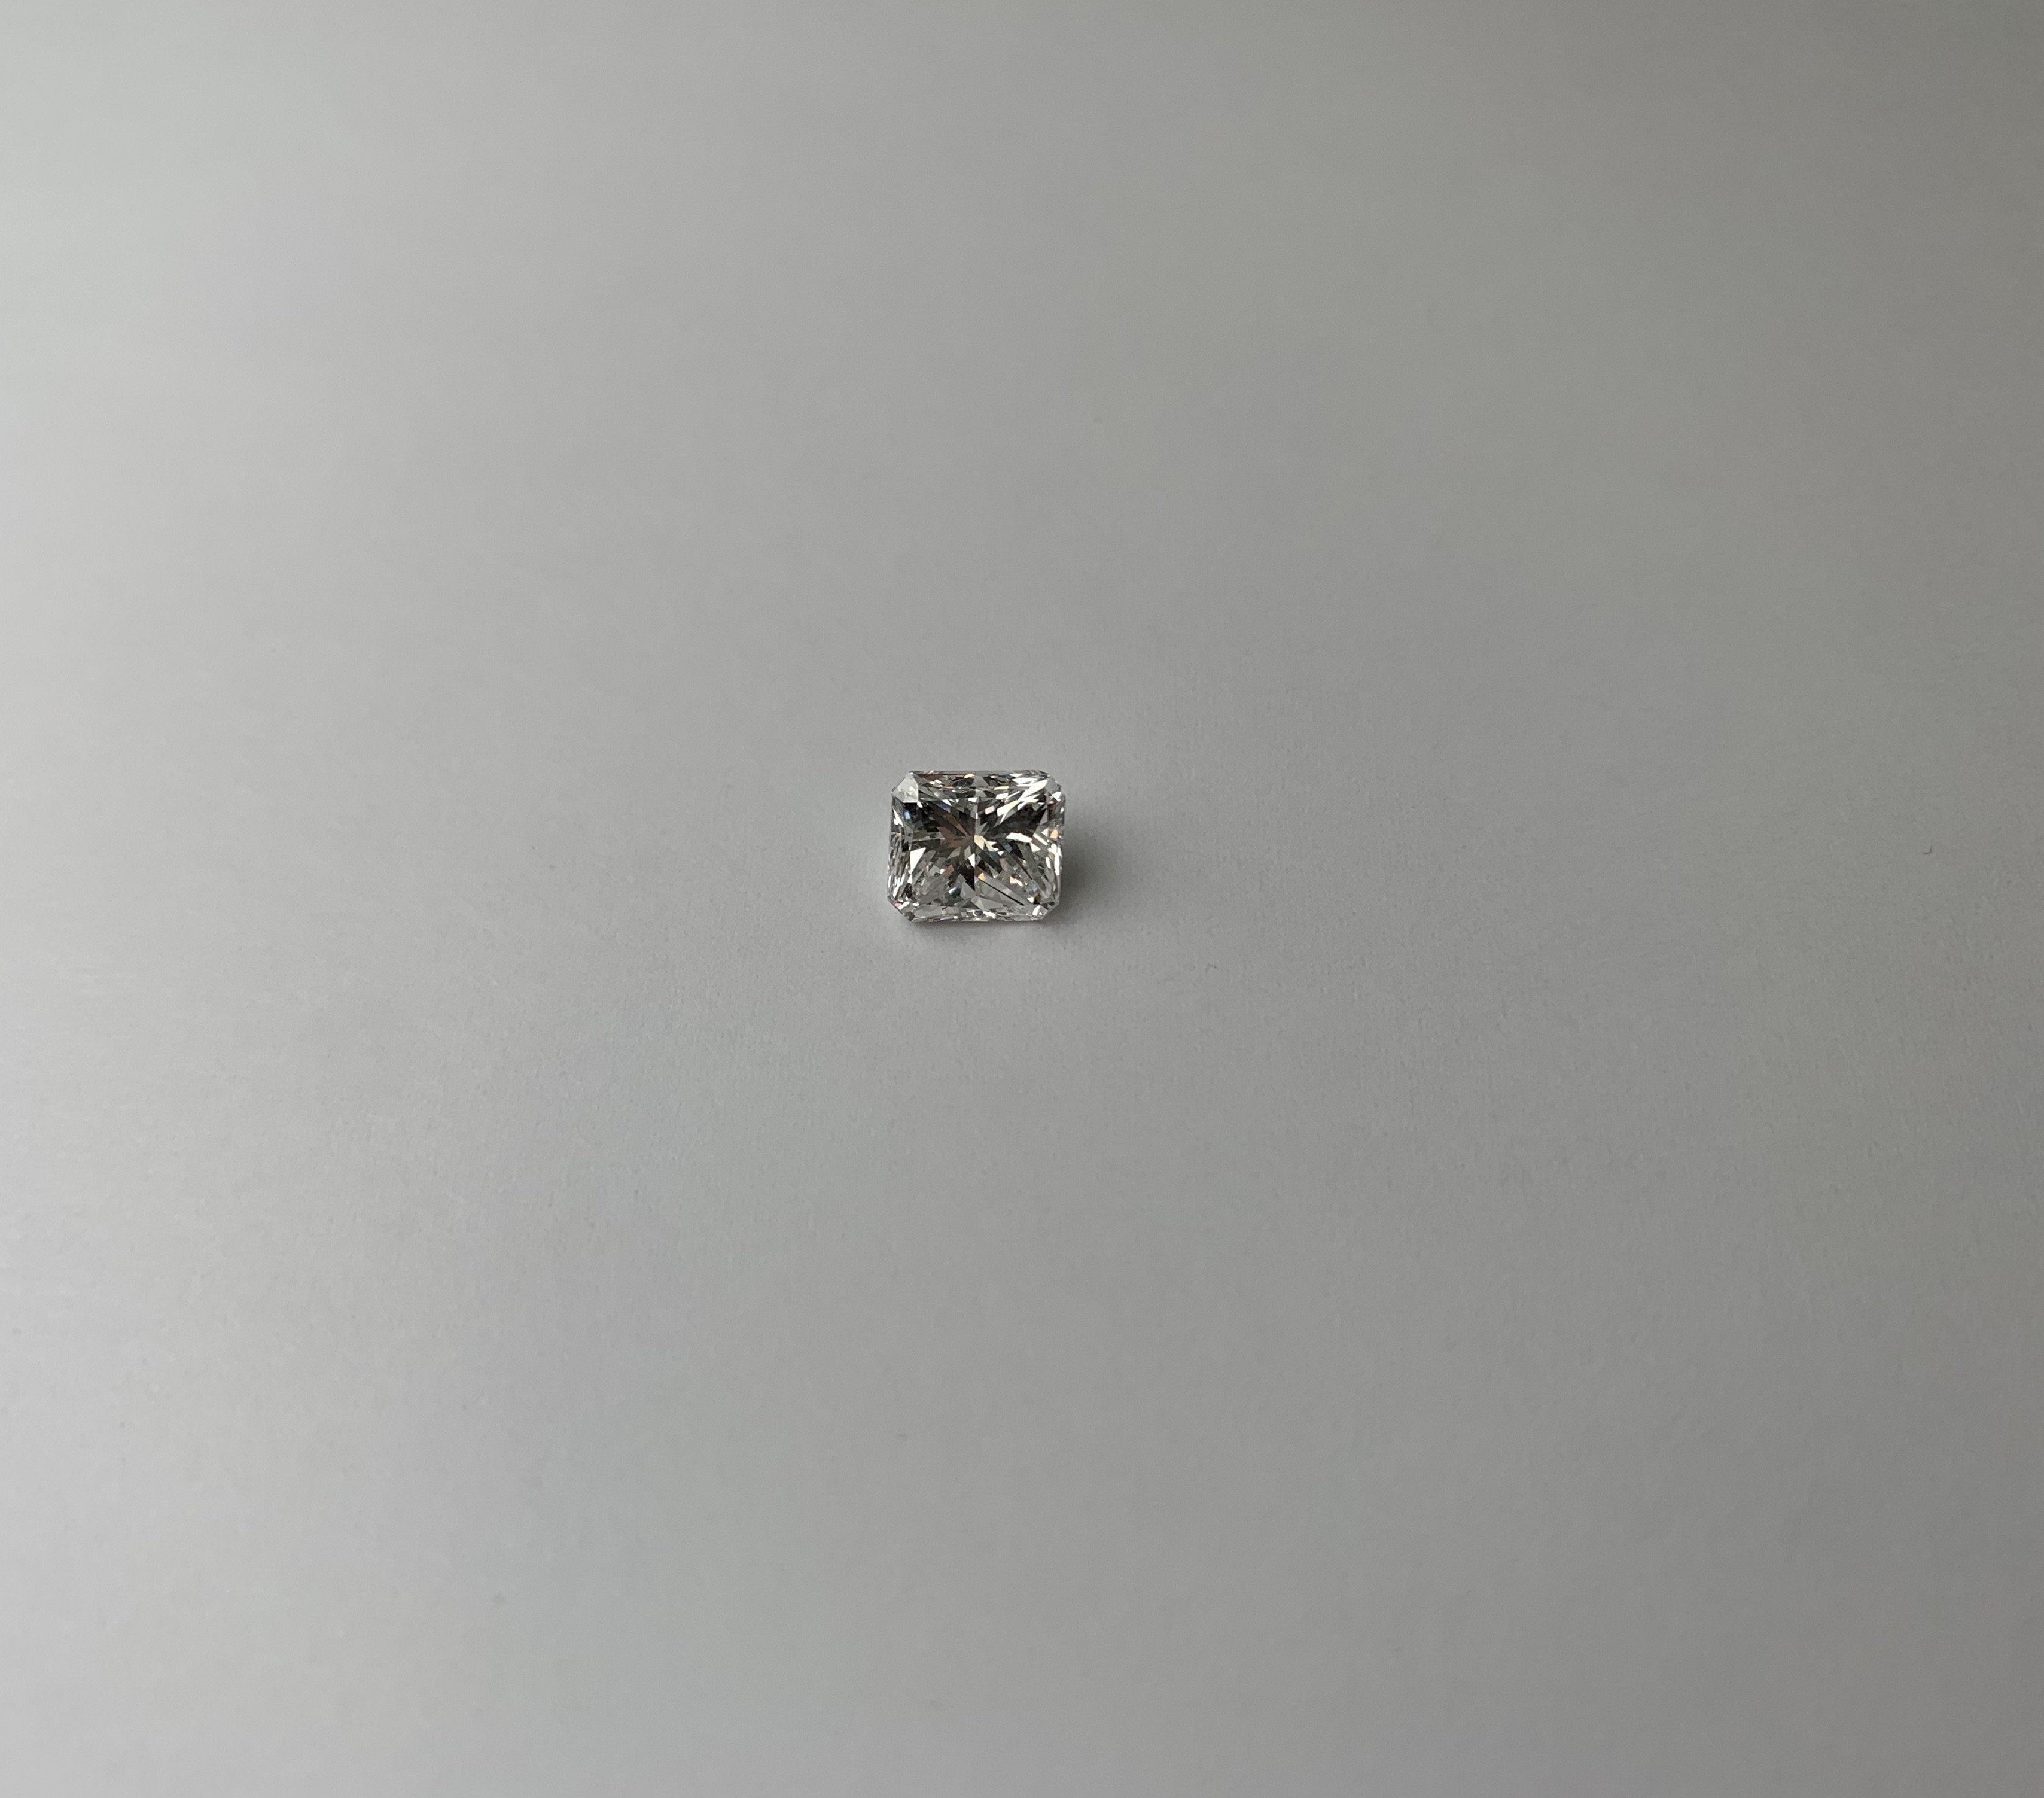 GIA Certified 2.0ct. brilliant